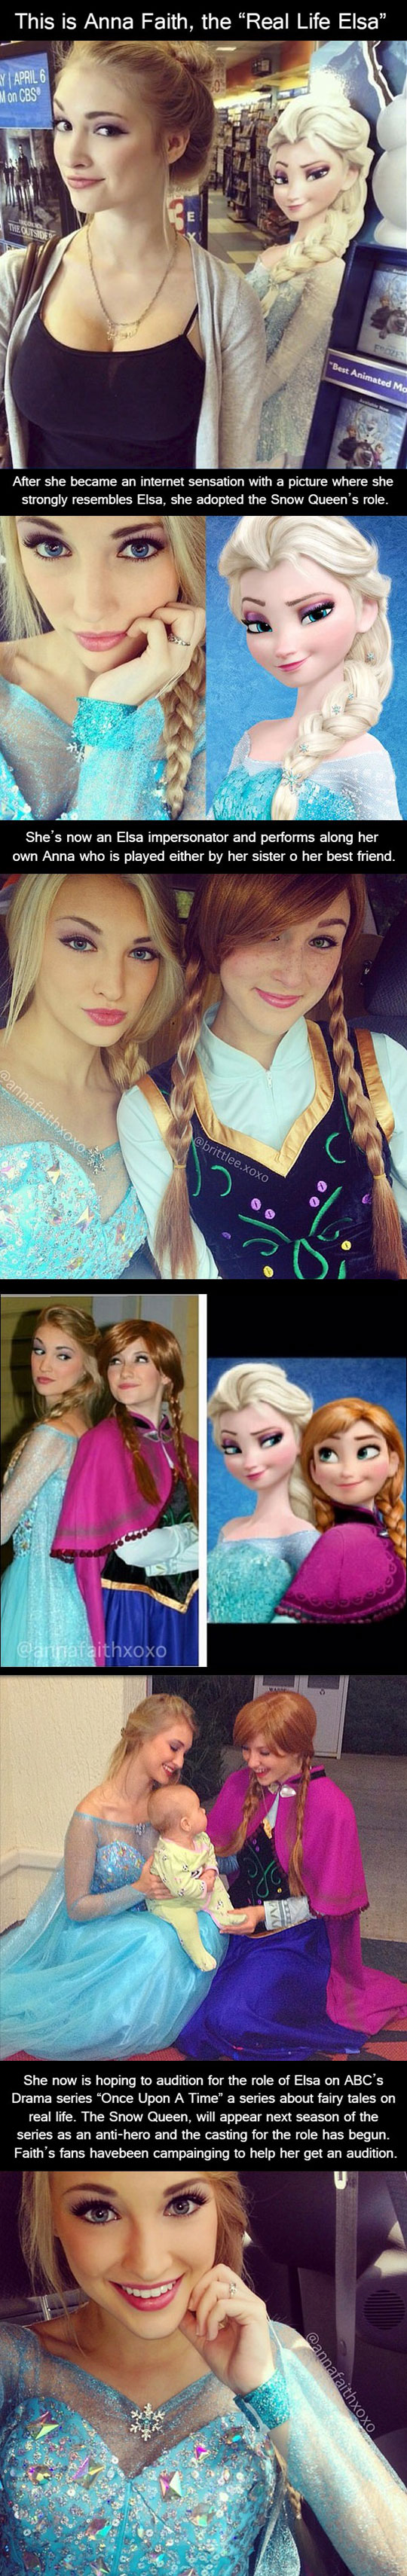 cool-Elsa-Frozen-impersonator-cosplay